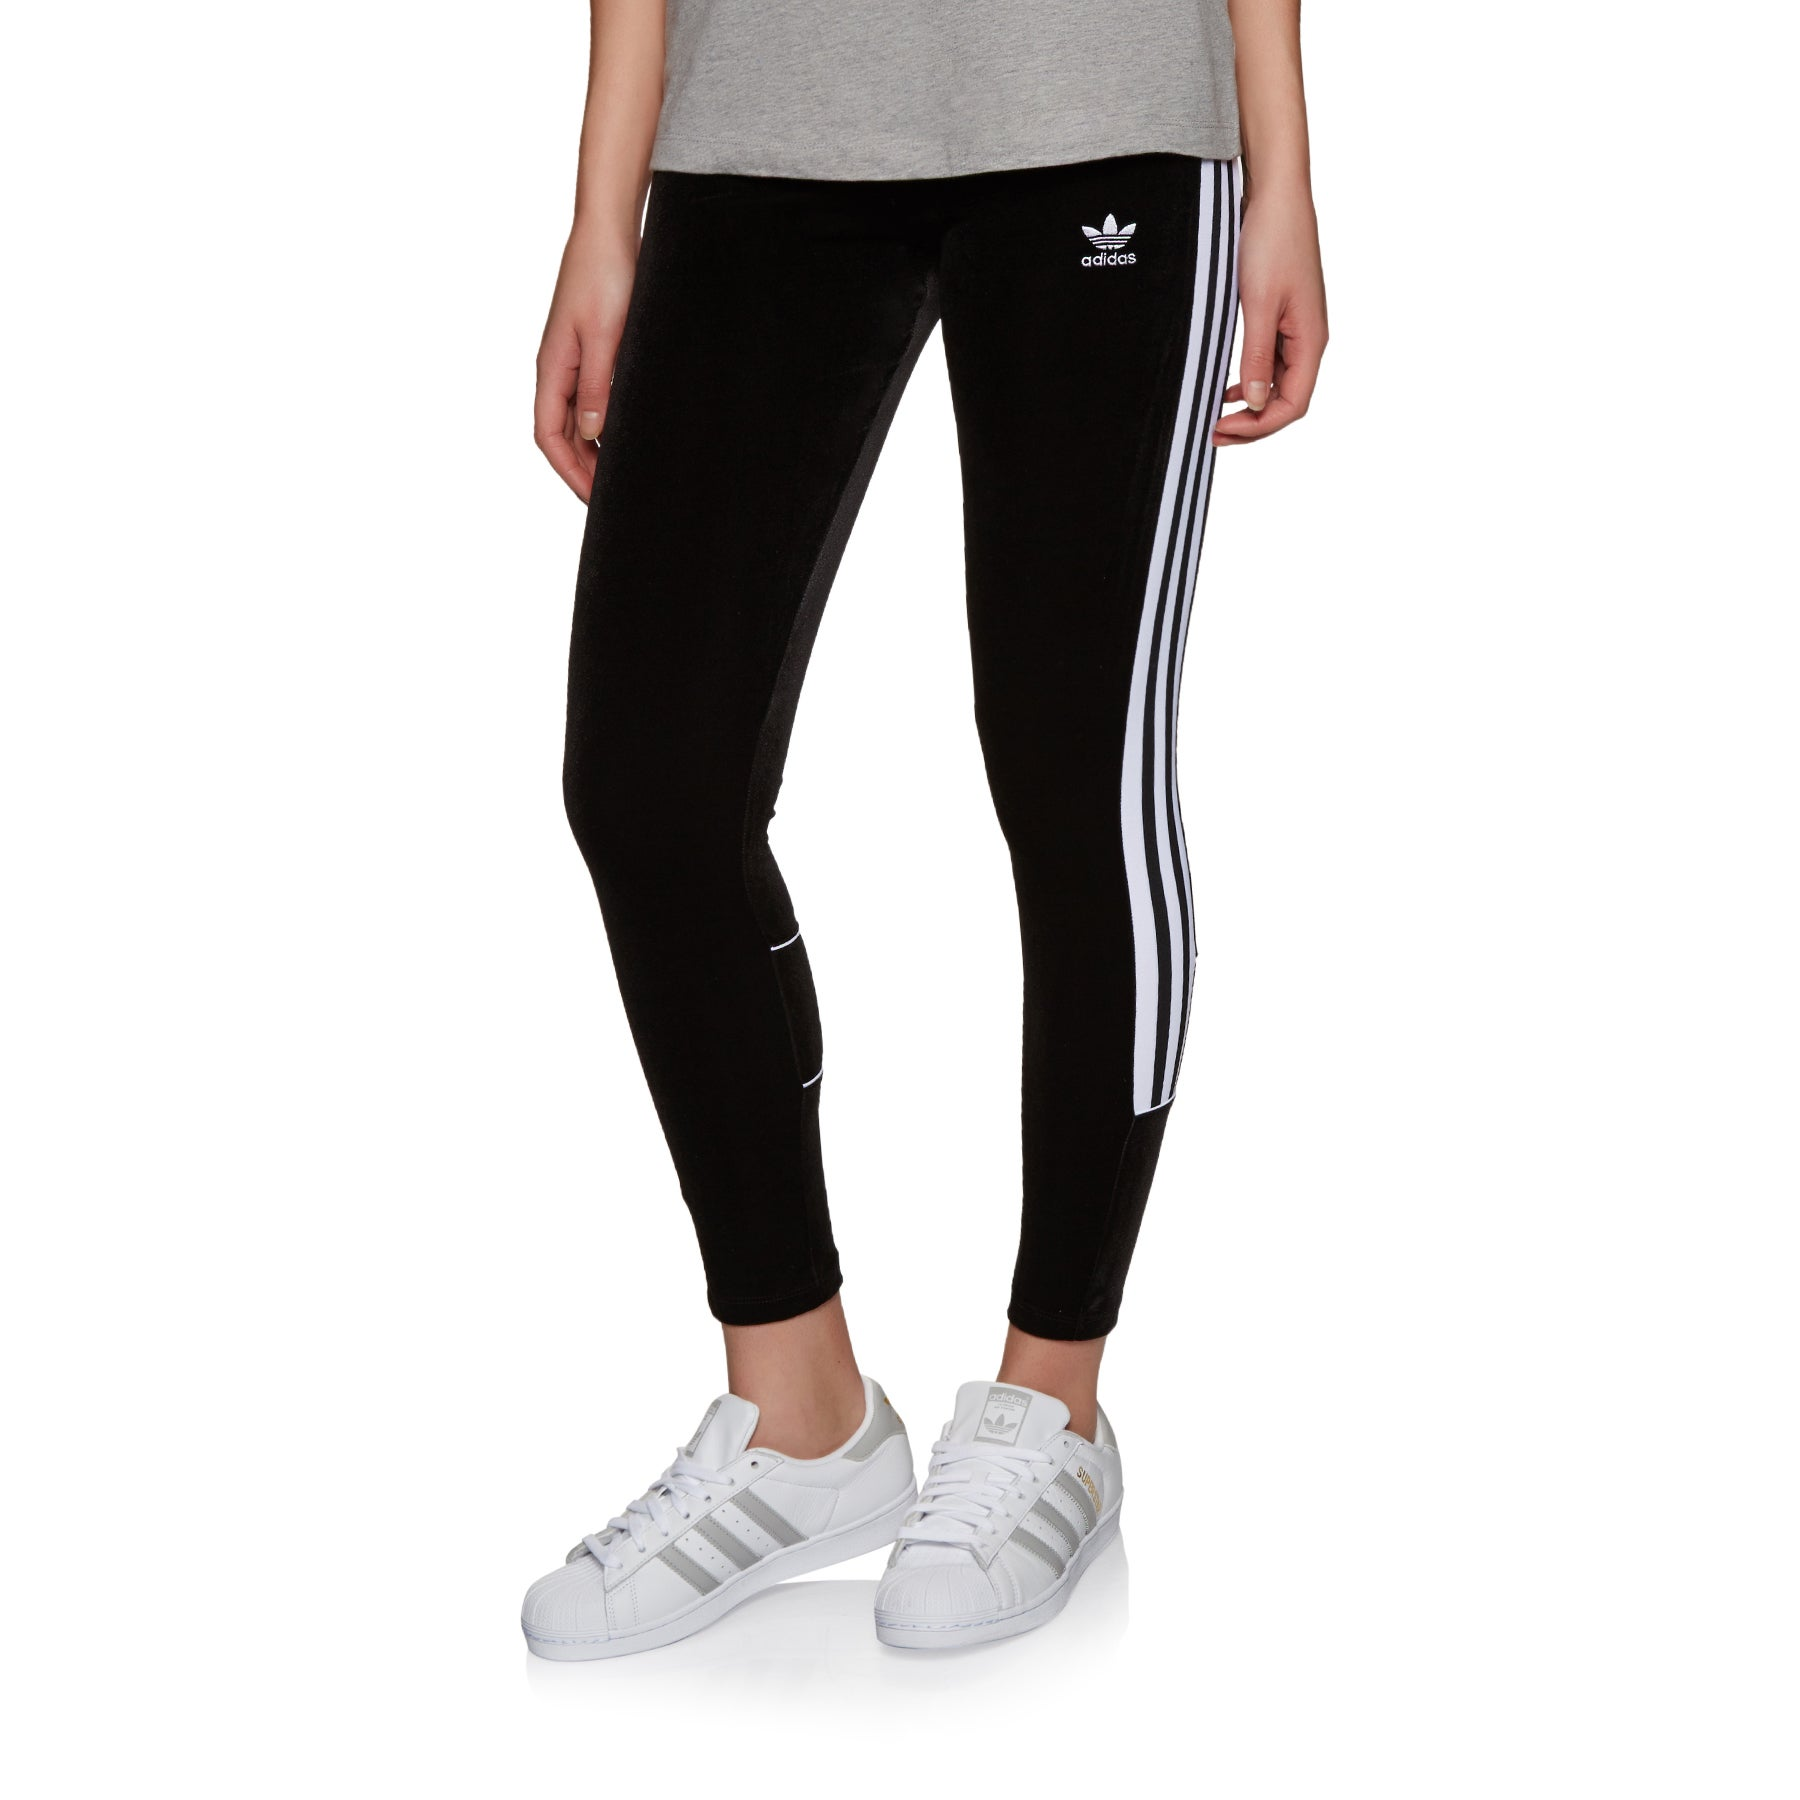 Leggings Adidas Originals Tights - Black